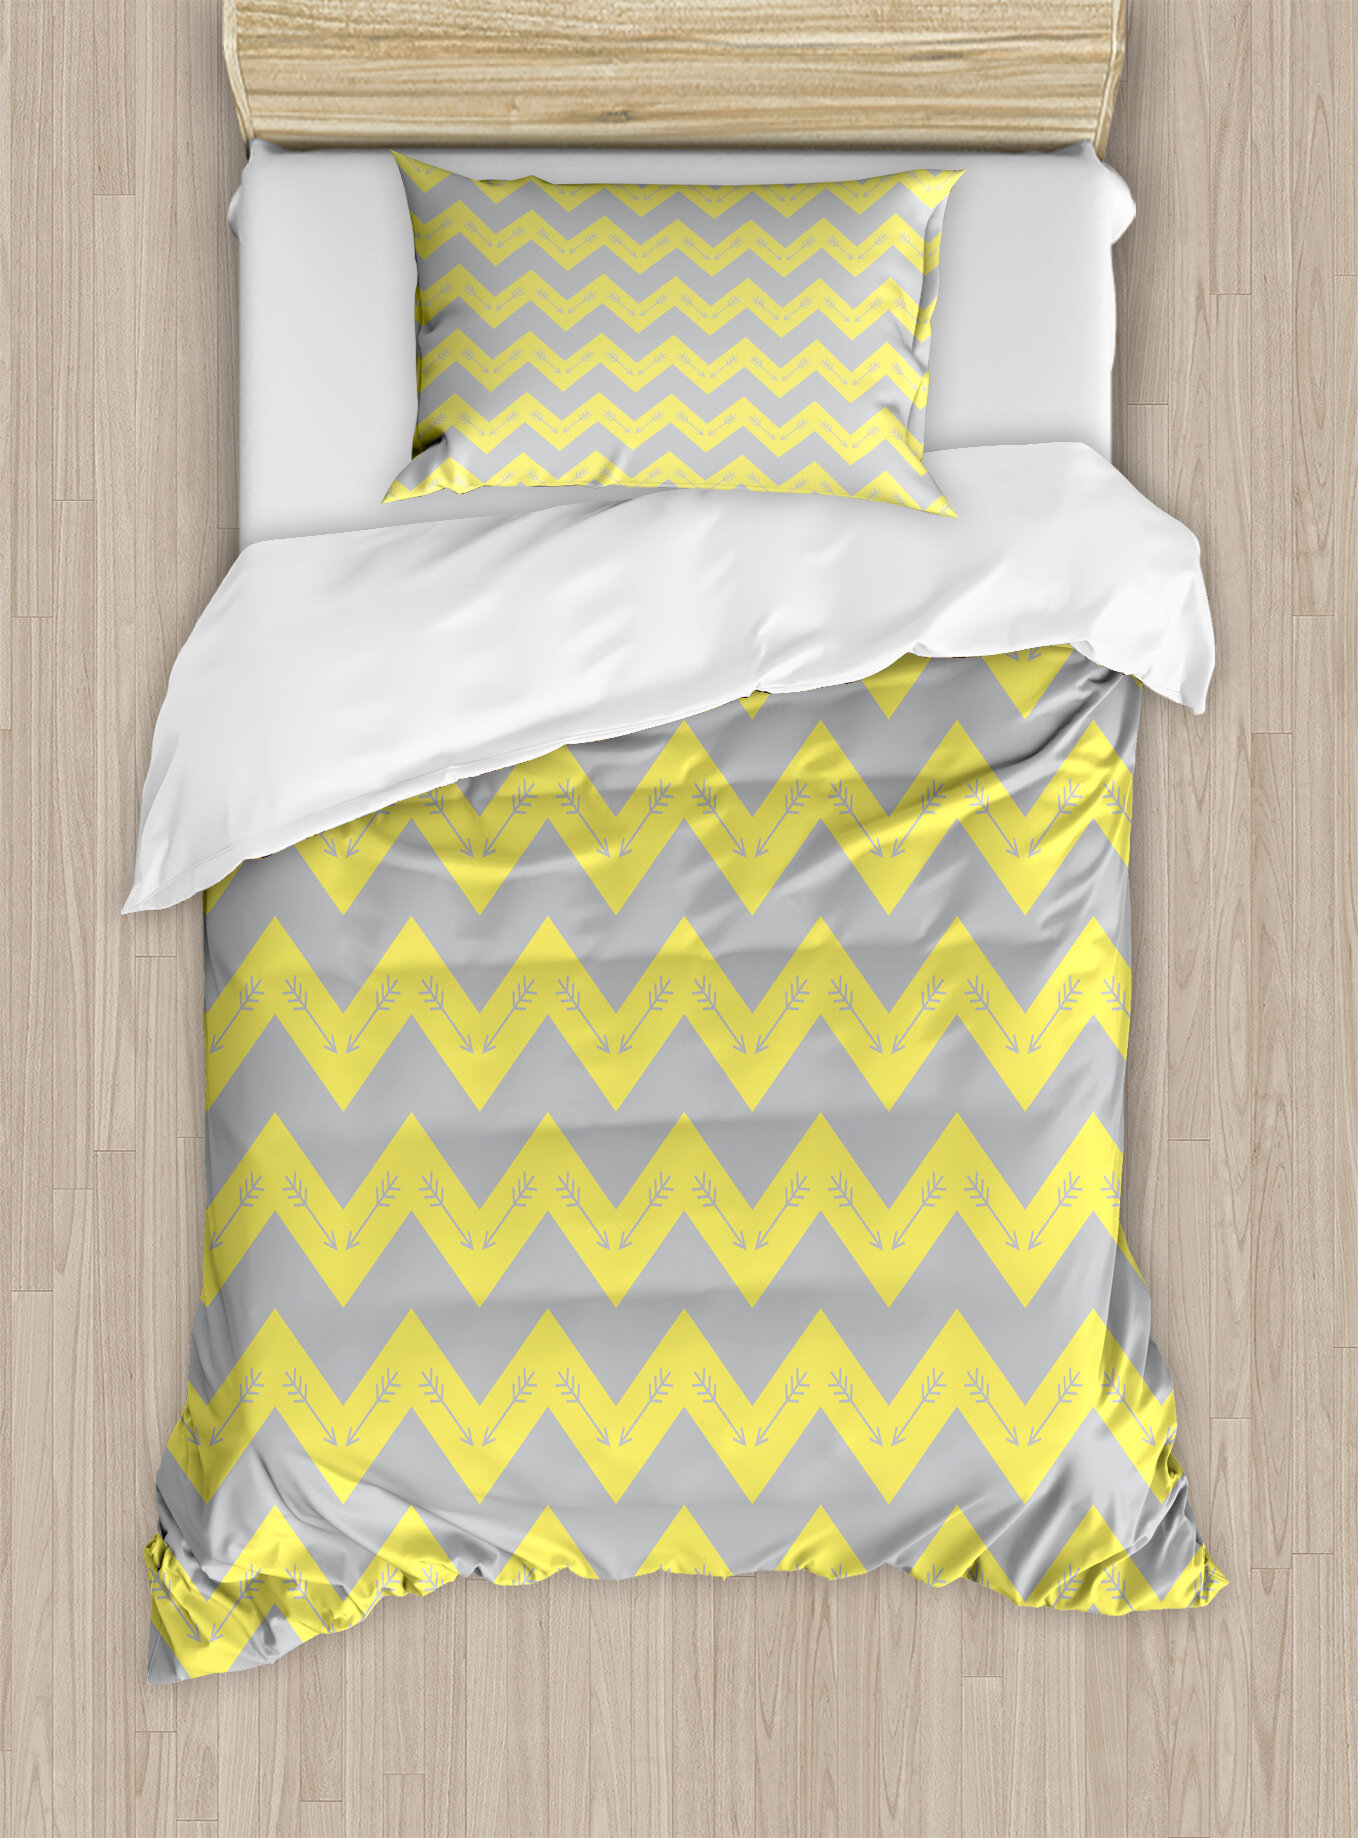 new french cover products comforter holli duvet tribal stripe linen zollinger lifestyle